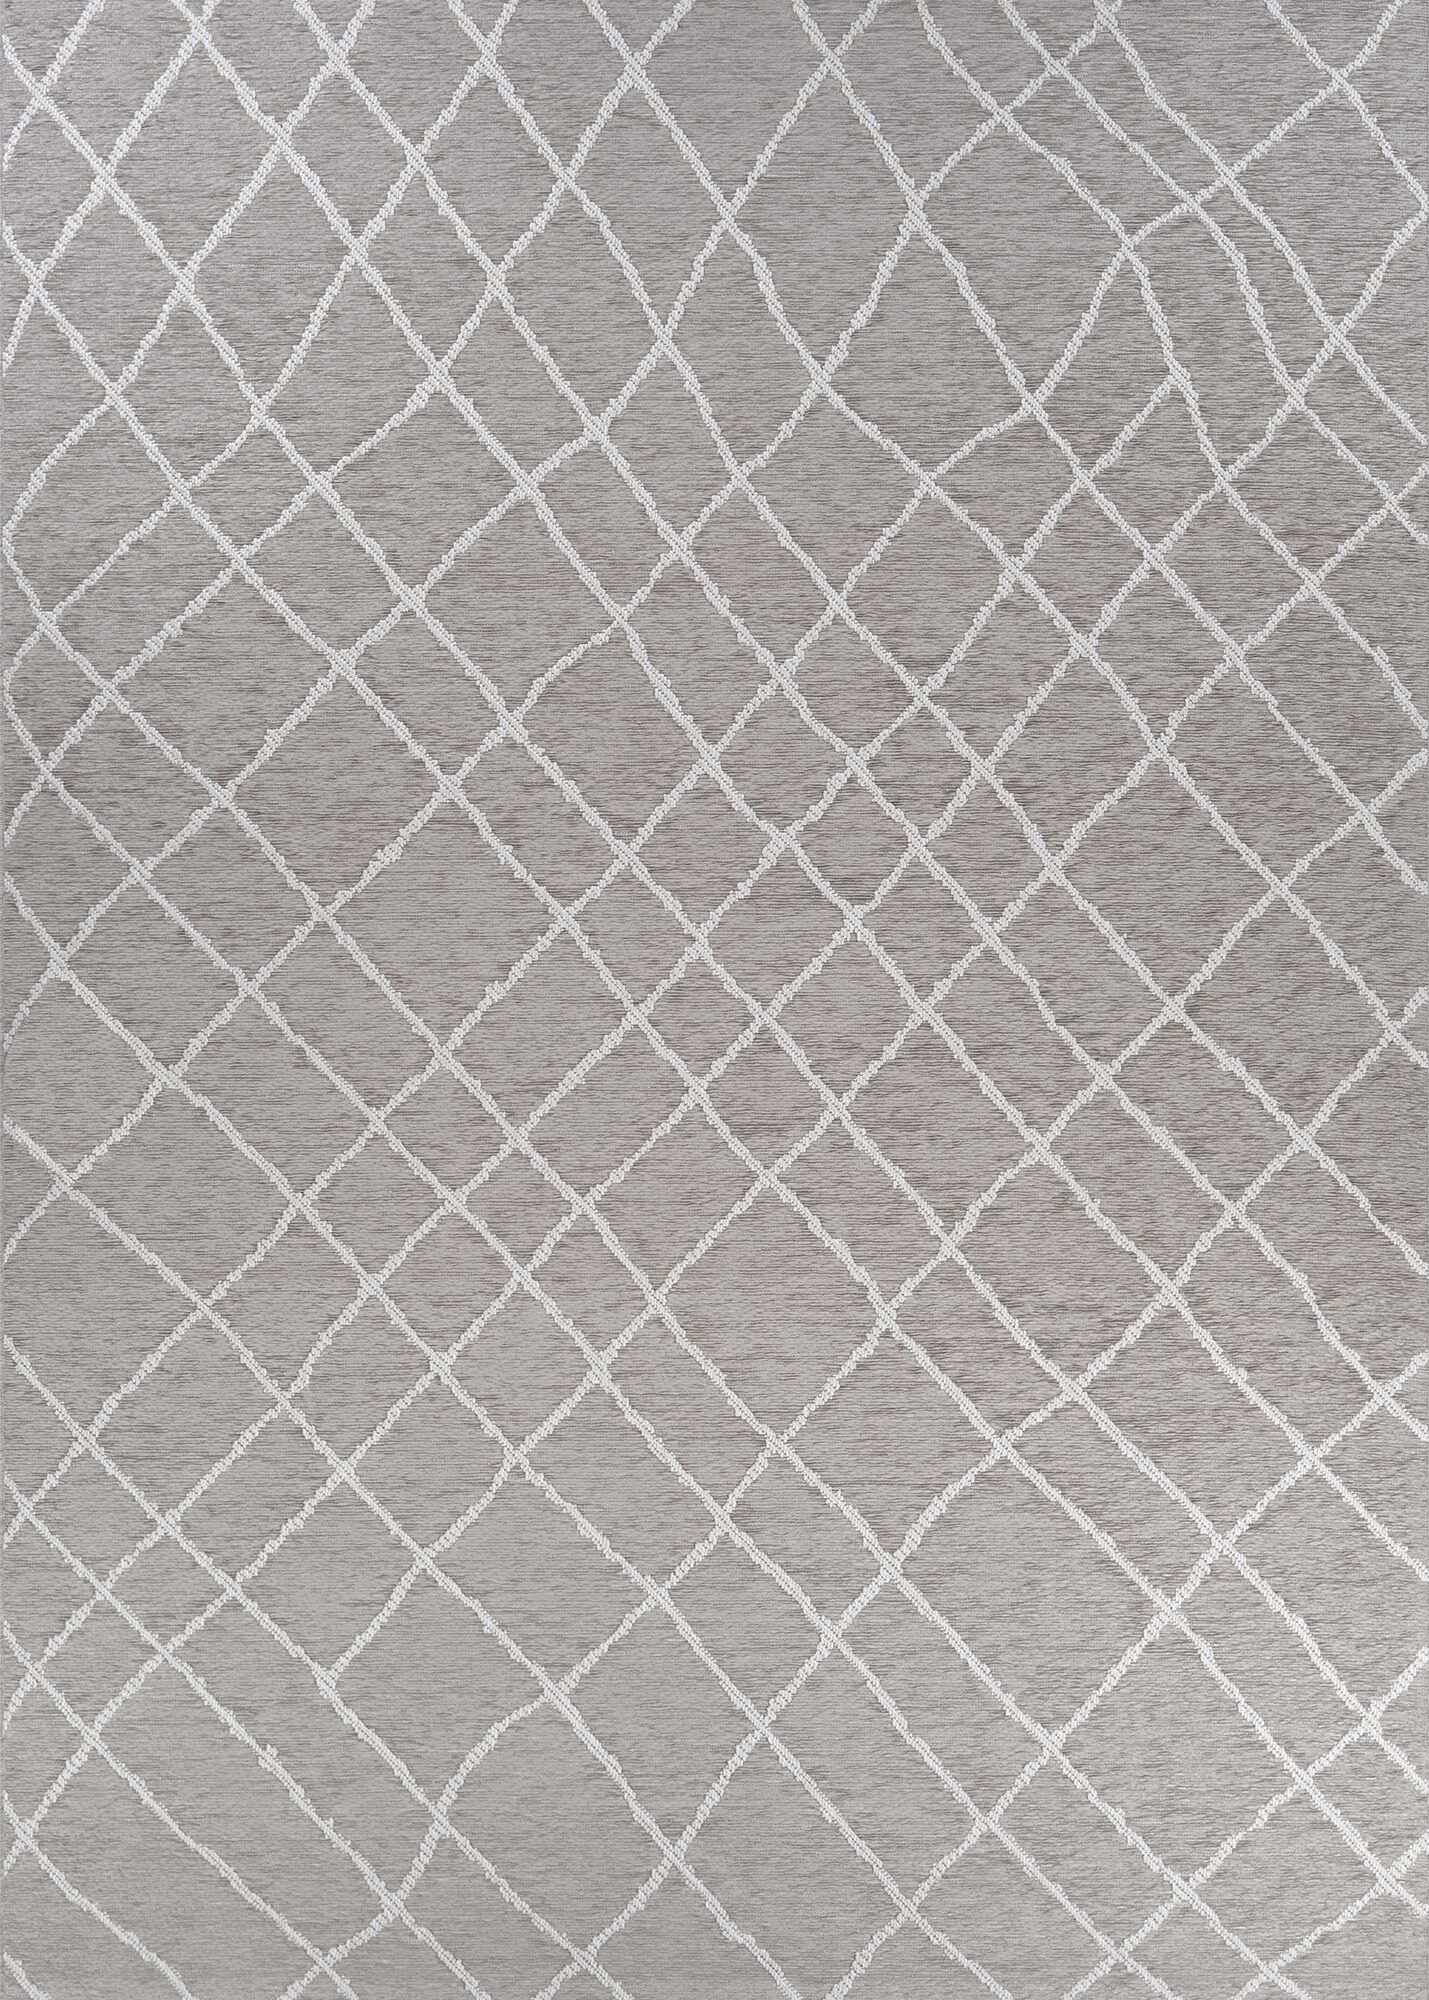 Temme Gray Indoor/Outdoor Area Rug Rug Size: Rectangle 6'4